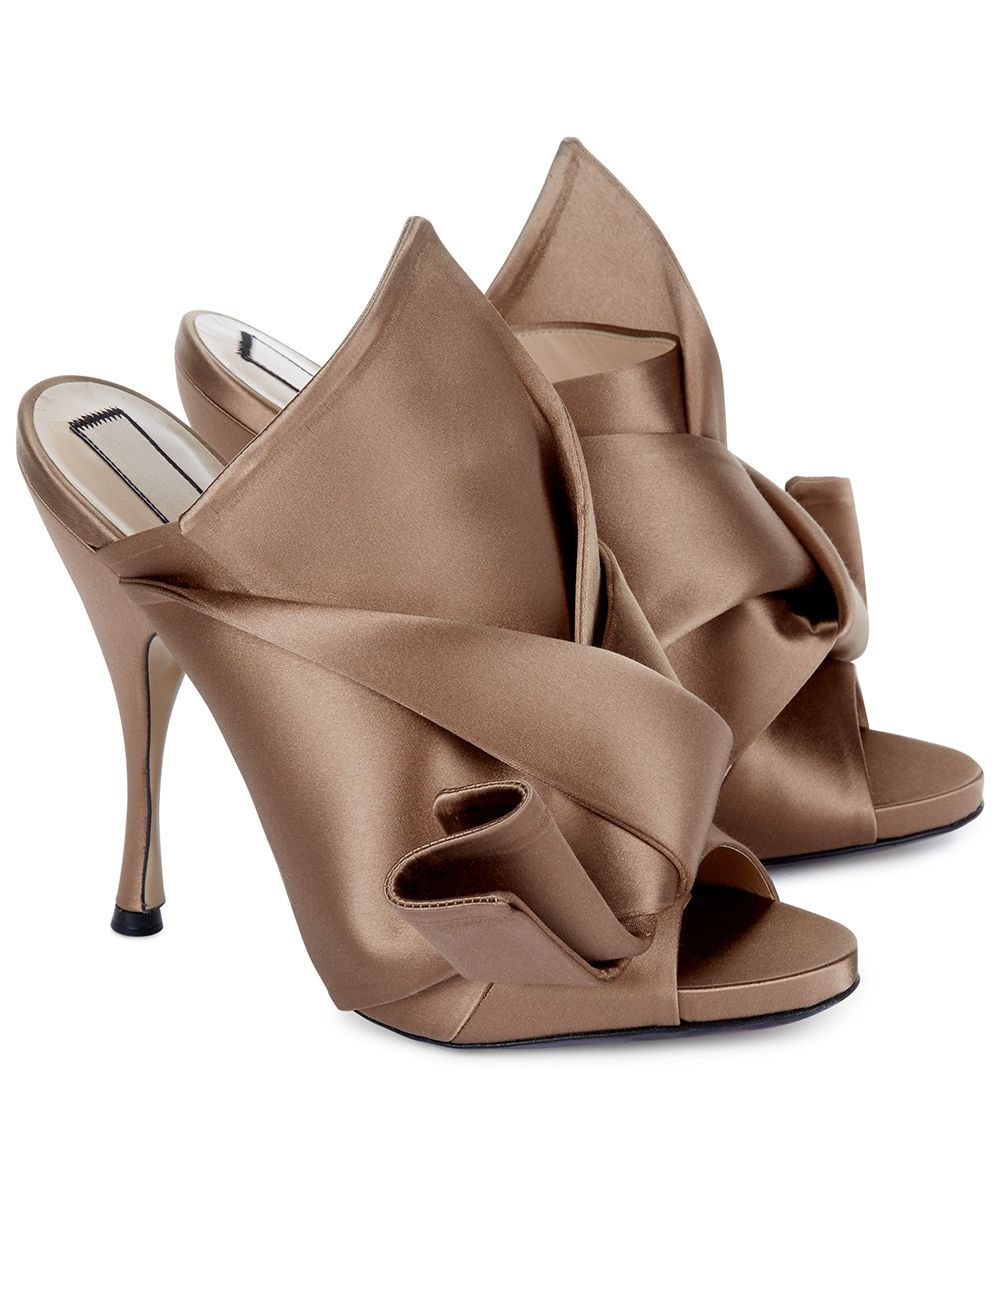 Cheap Price Buy Discount Clearance Cost No21 Bow Detail Mules Cheap Low Shipping Clearance Buy ESrDr0uyOY